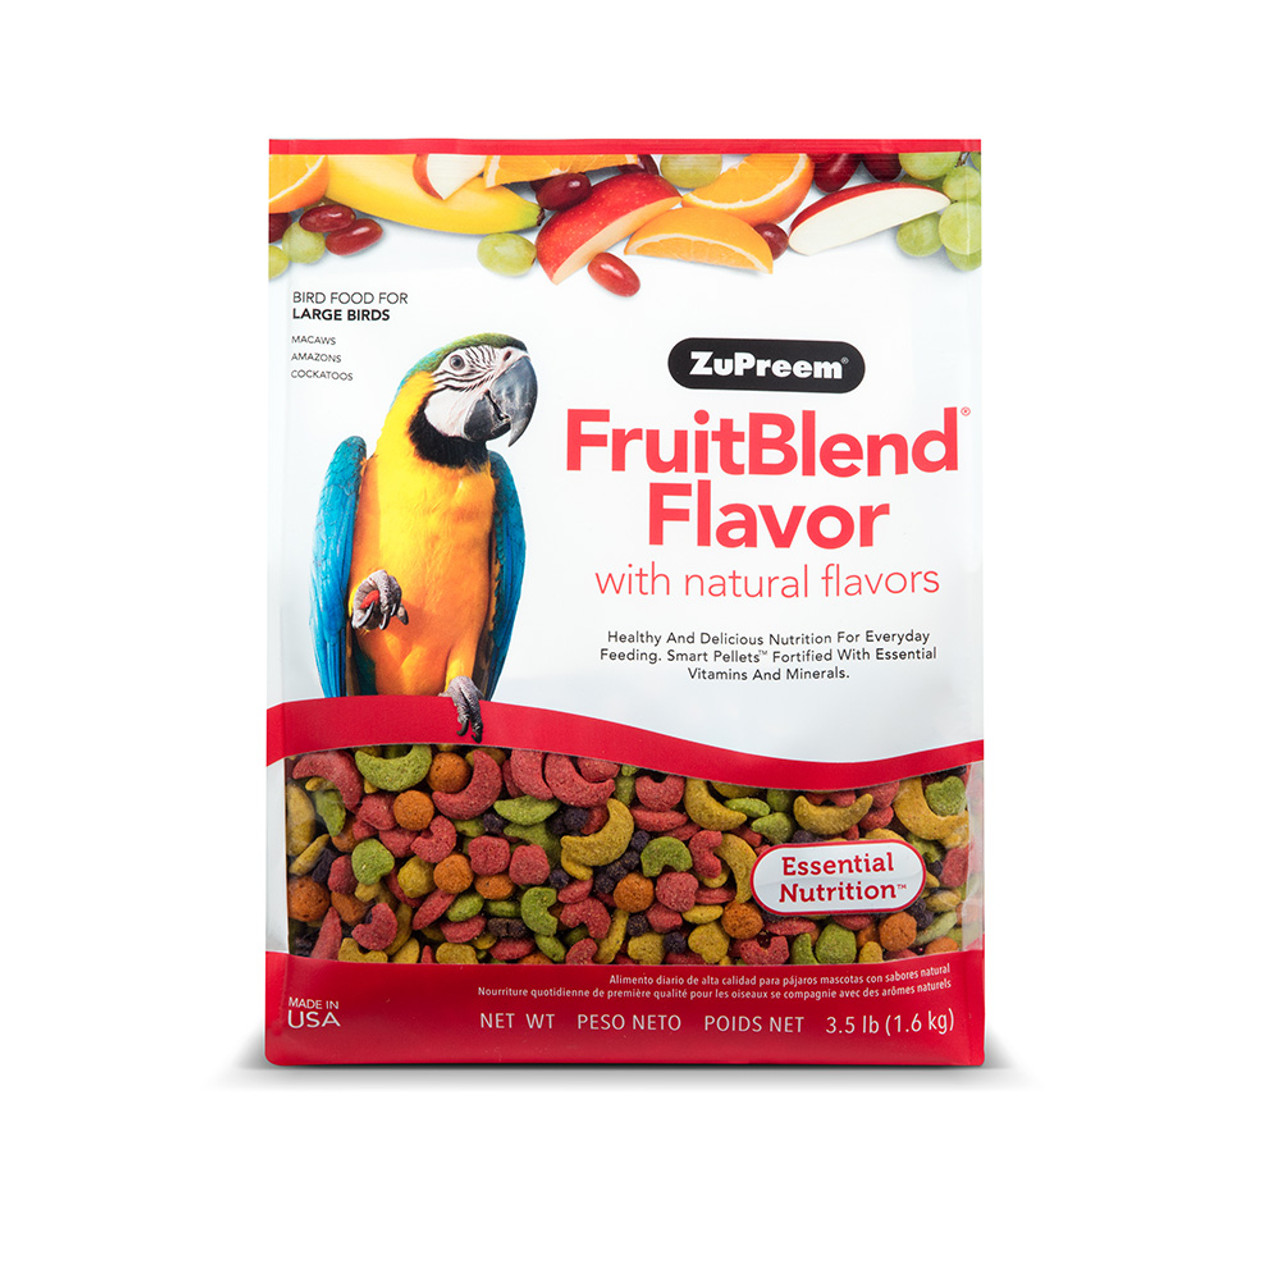 ZuPreem FruitBlend Flavor Large Bird Food